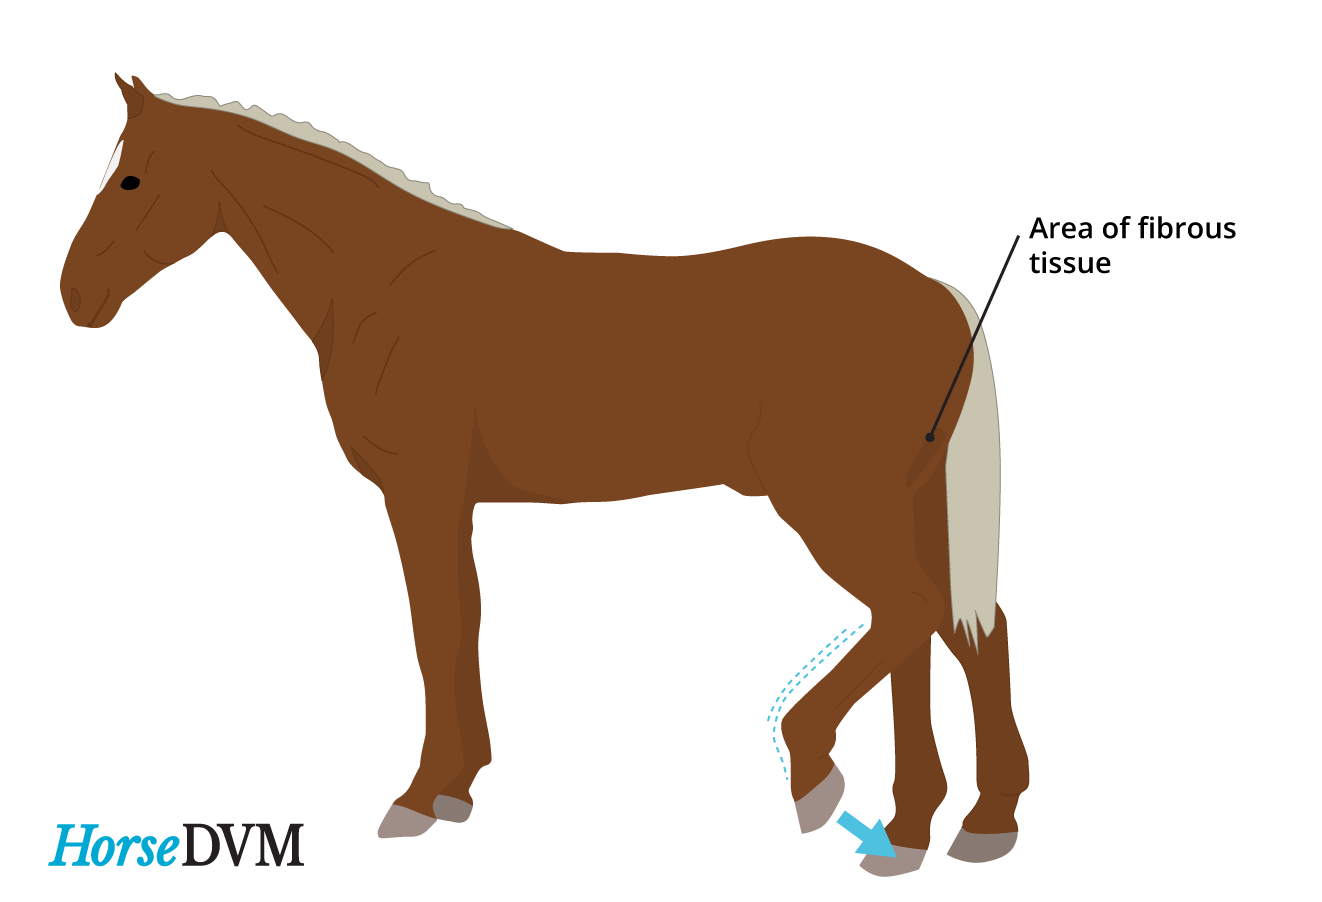 Image of a typical horse with Fibrotic myopathy